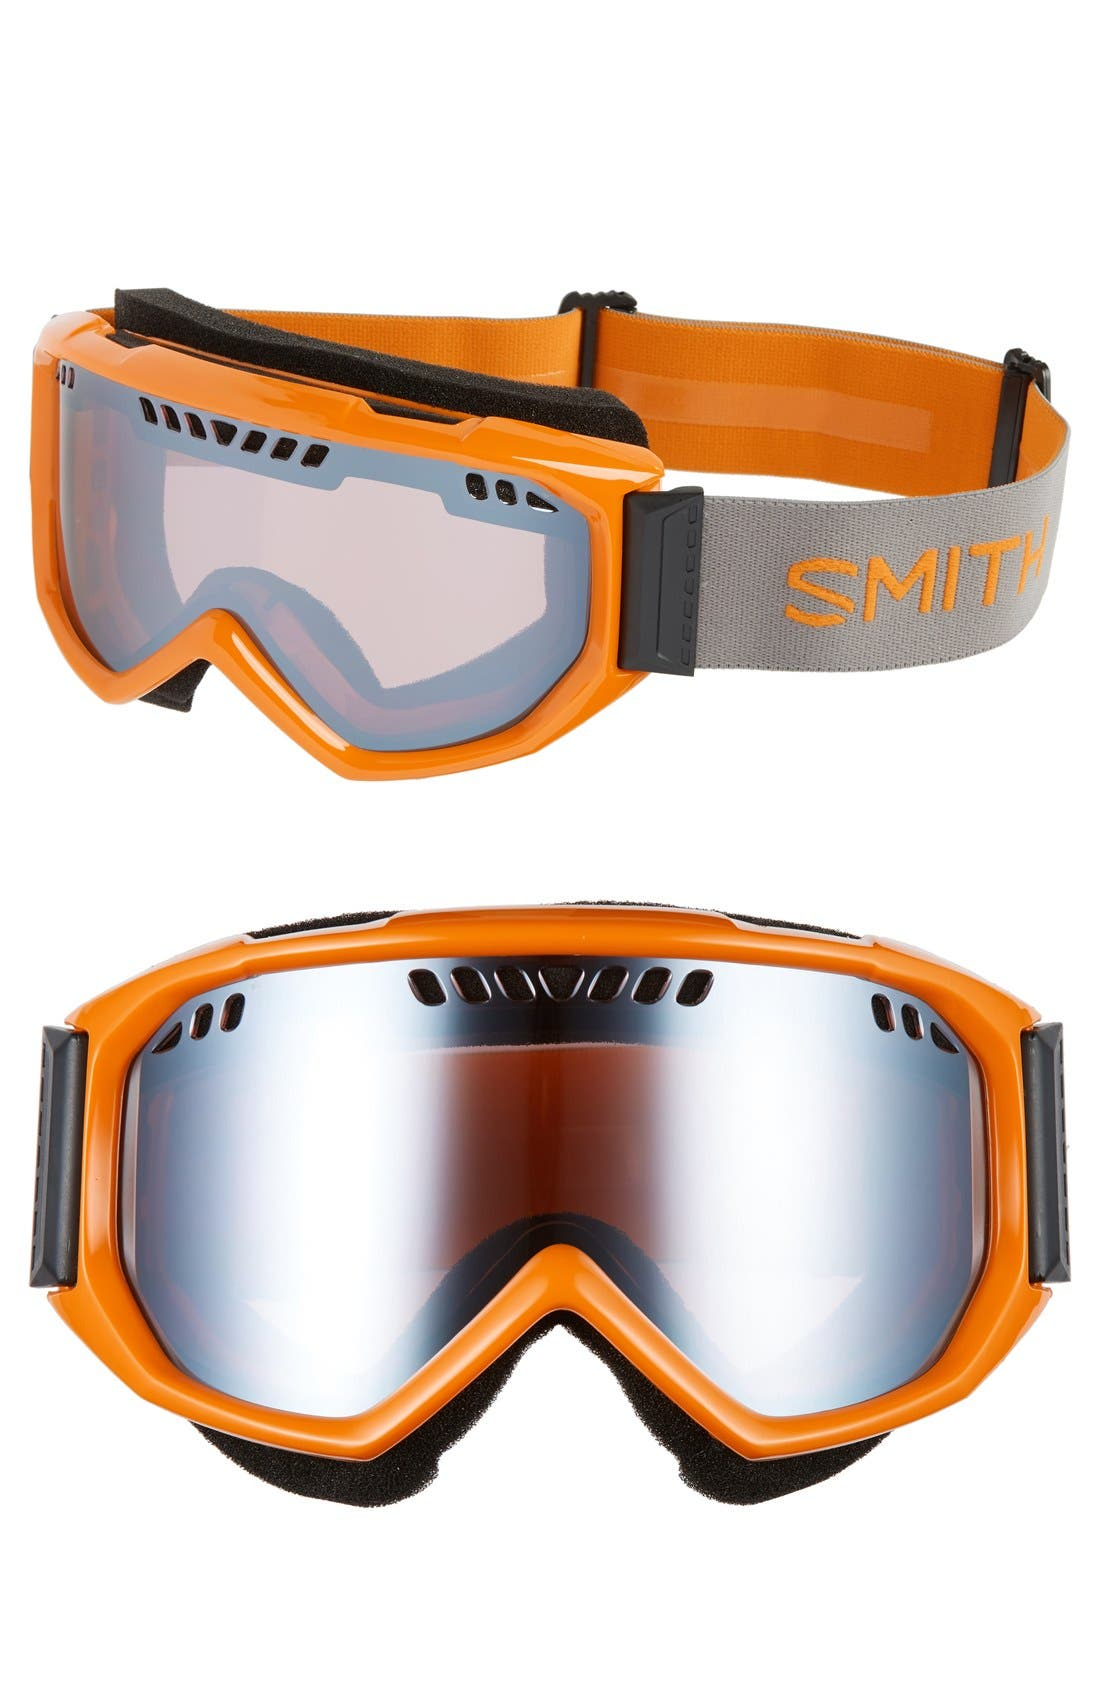 Alternate Image 1 Selected - Smith Scope 175mm Snow Goggles